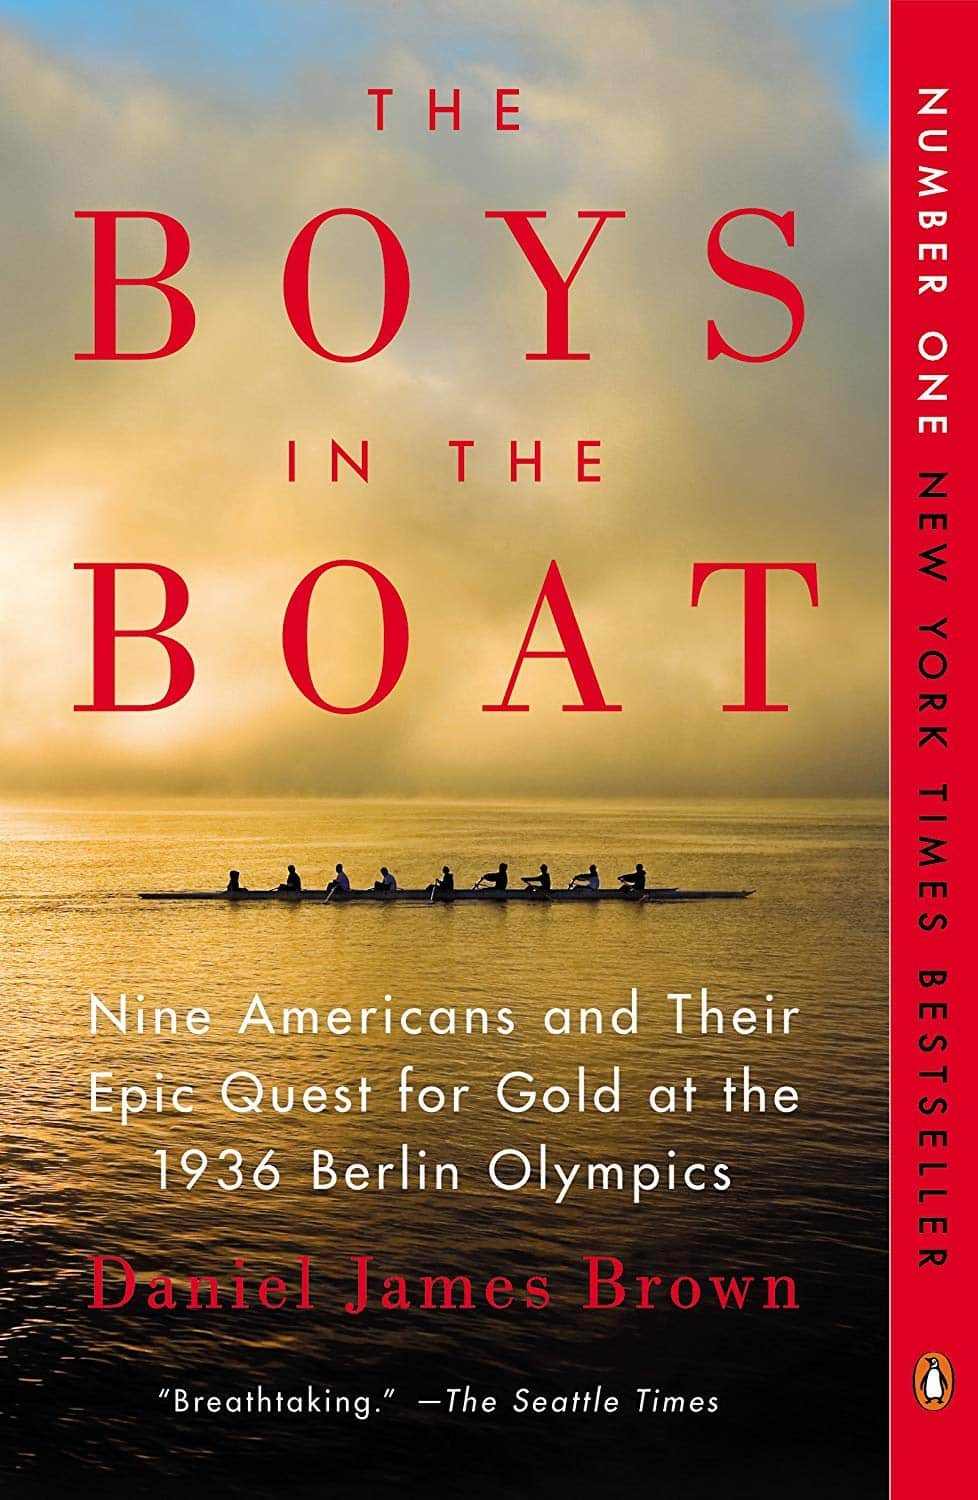 The Boys in the Boat $1.99 on Kindle @ Amazon